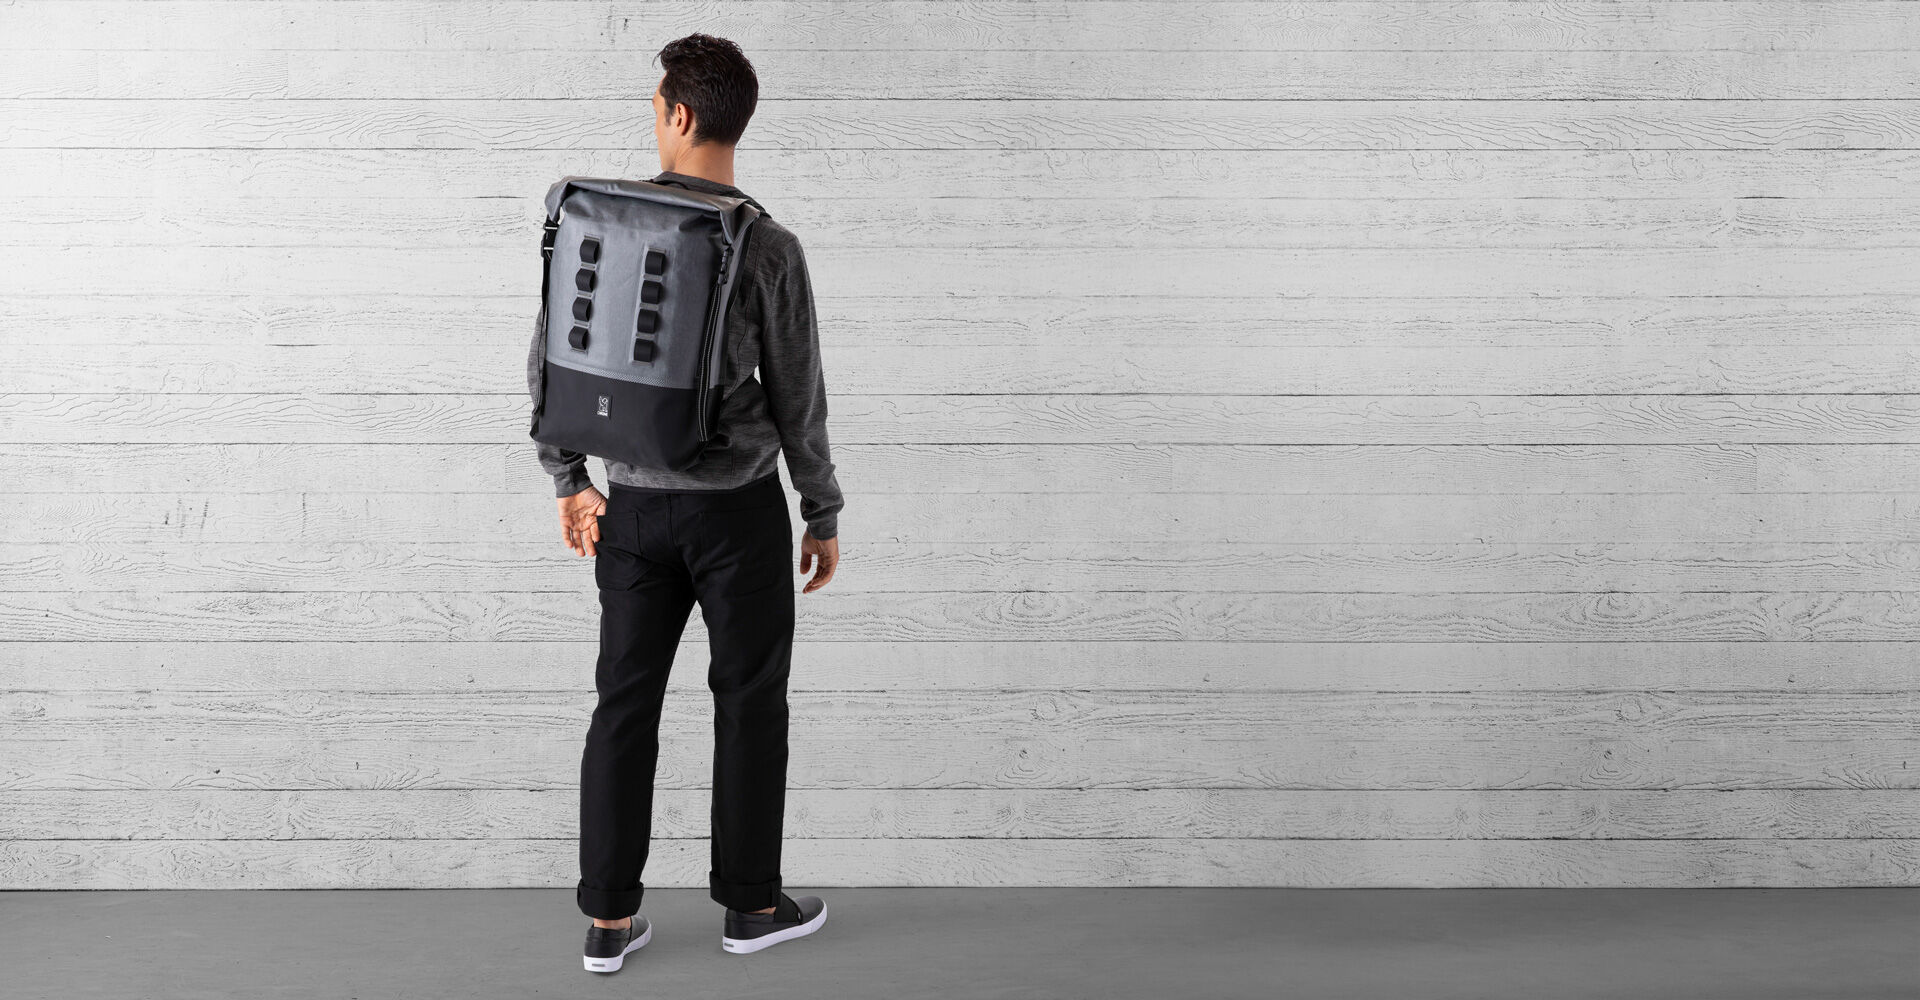 Urban Ex Rolltop 28L Backpack in Grey / Black - wide view.